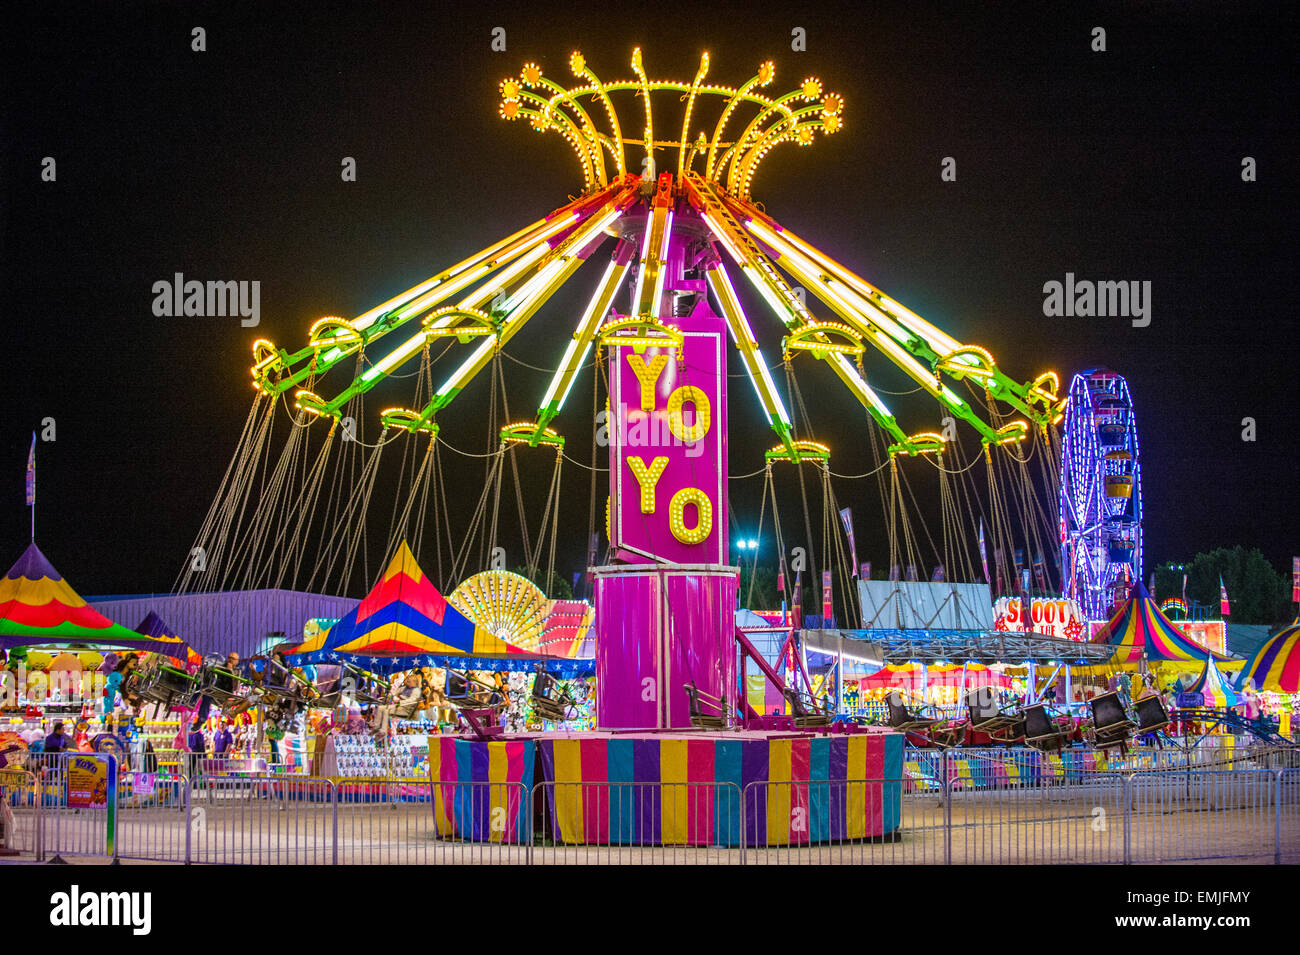 Amusement Park At The Clark County Fair And Rodeo Held In